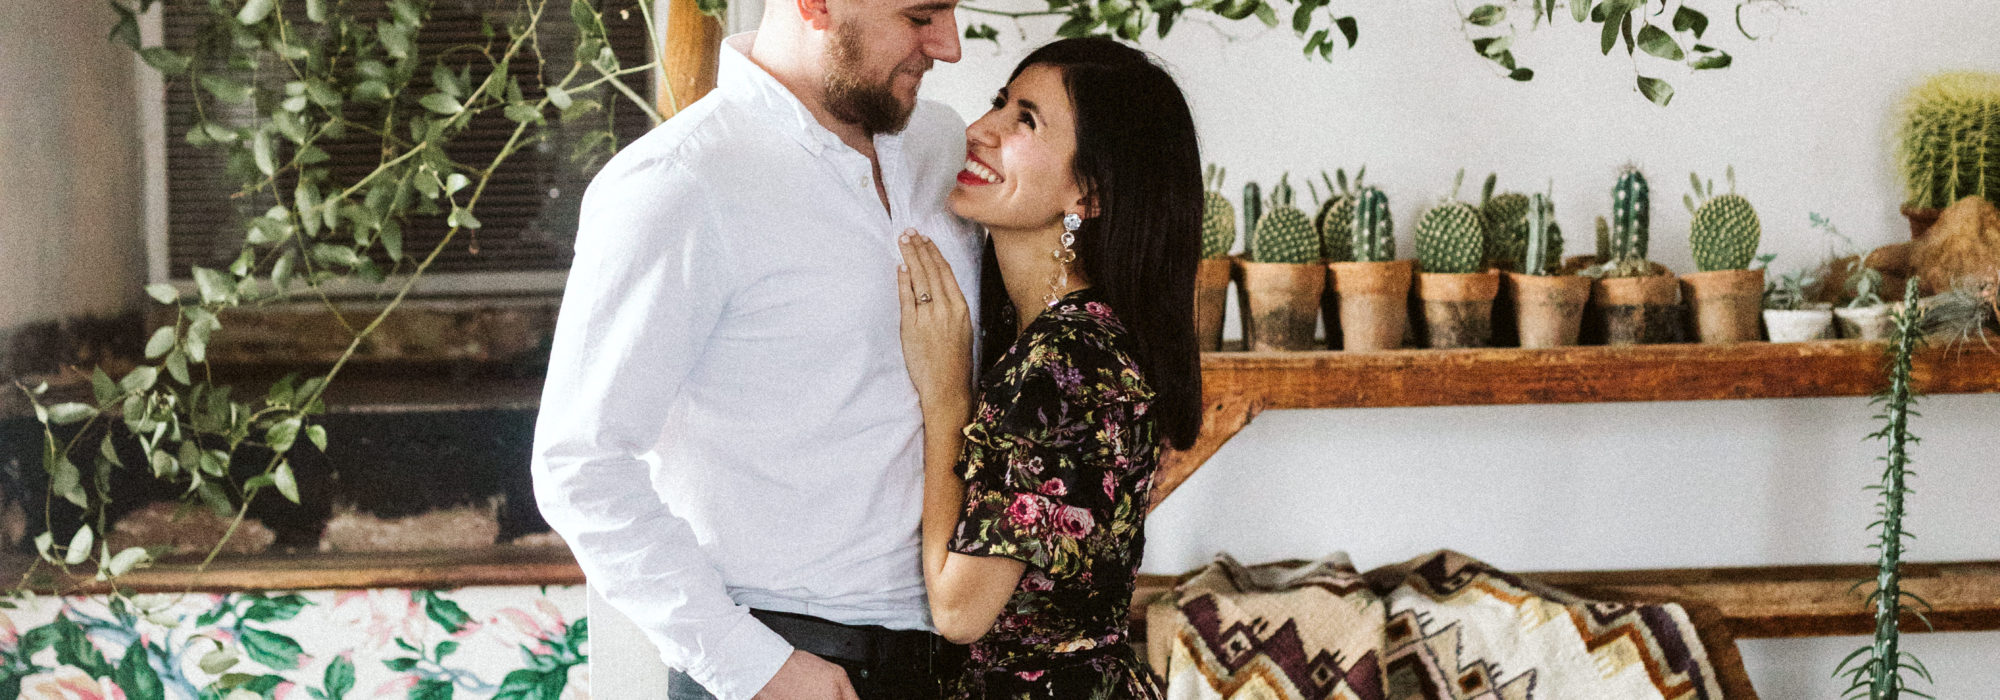 West Texas Engagement Shoot + Giveaway!